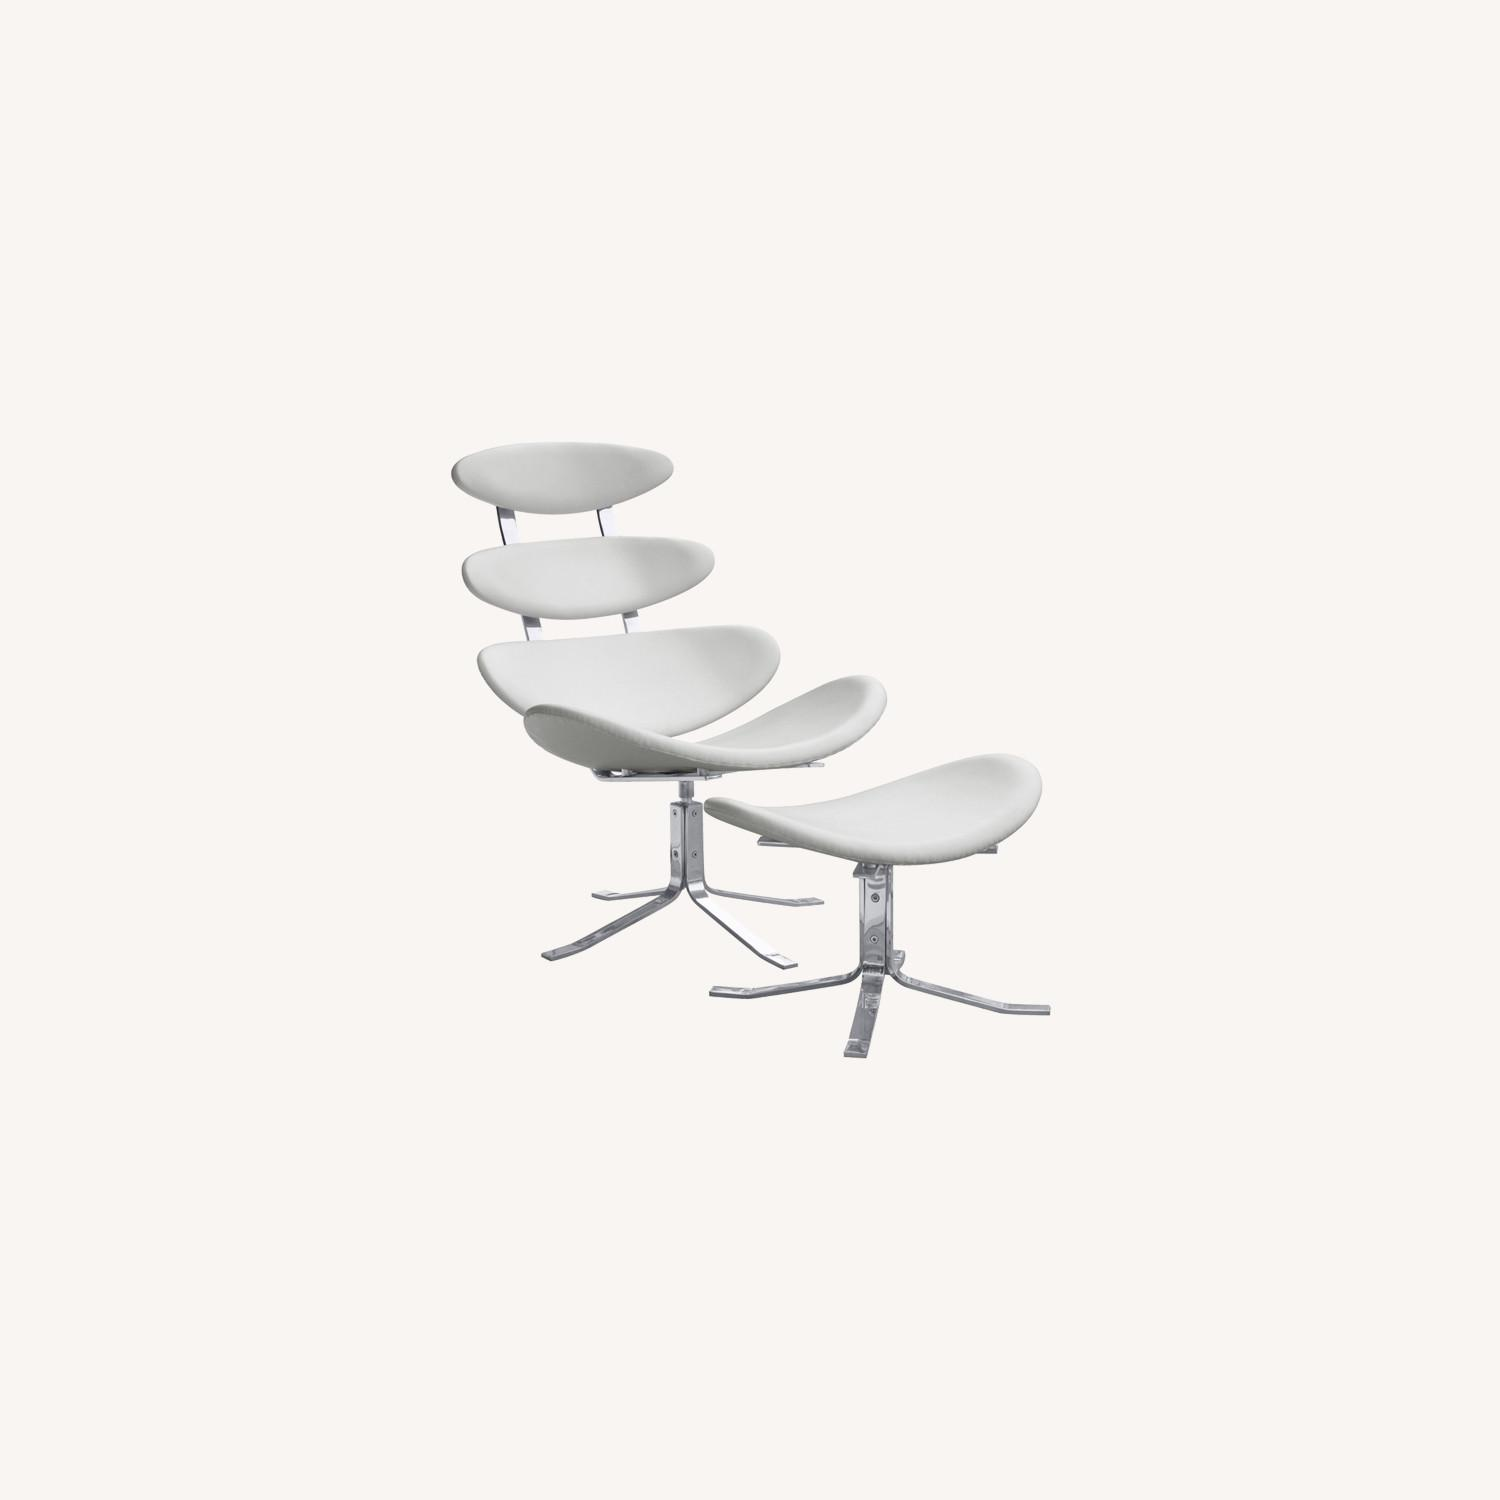 Chair & Ottoman In White Leather Sculptured Form - image-7